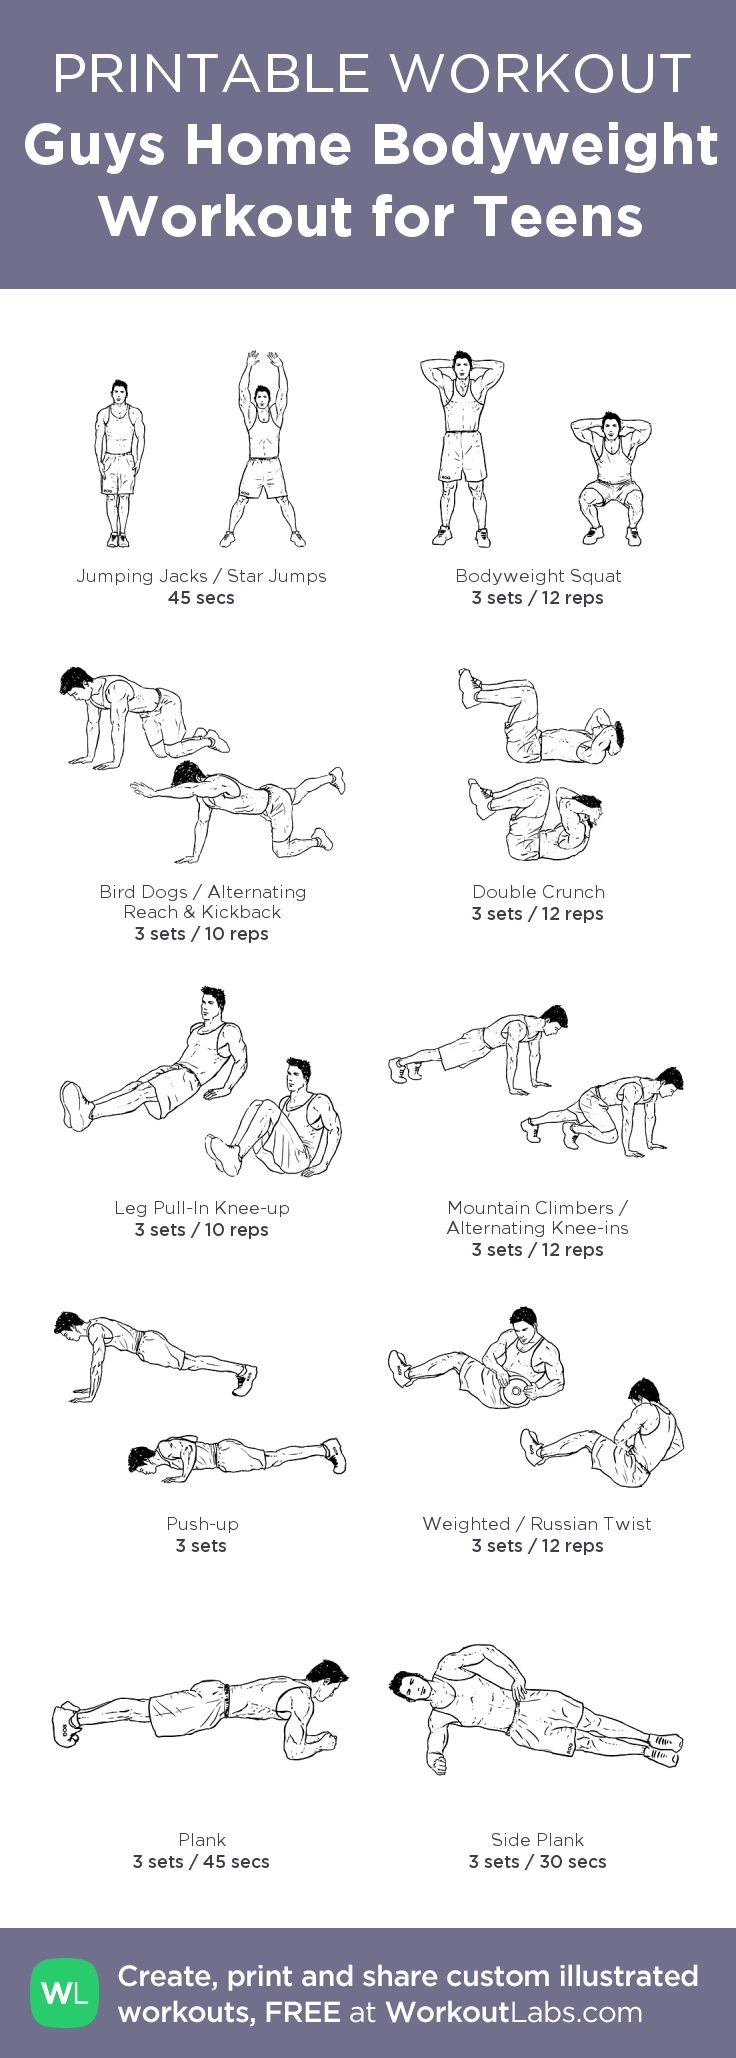 Pin by WorkoutLabs on ! A Permanent Health Kick ! - Healthy